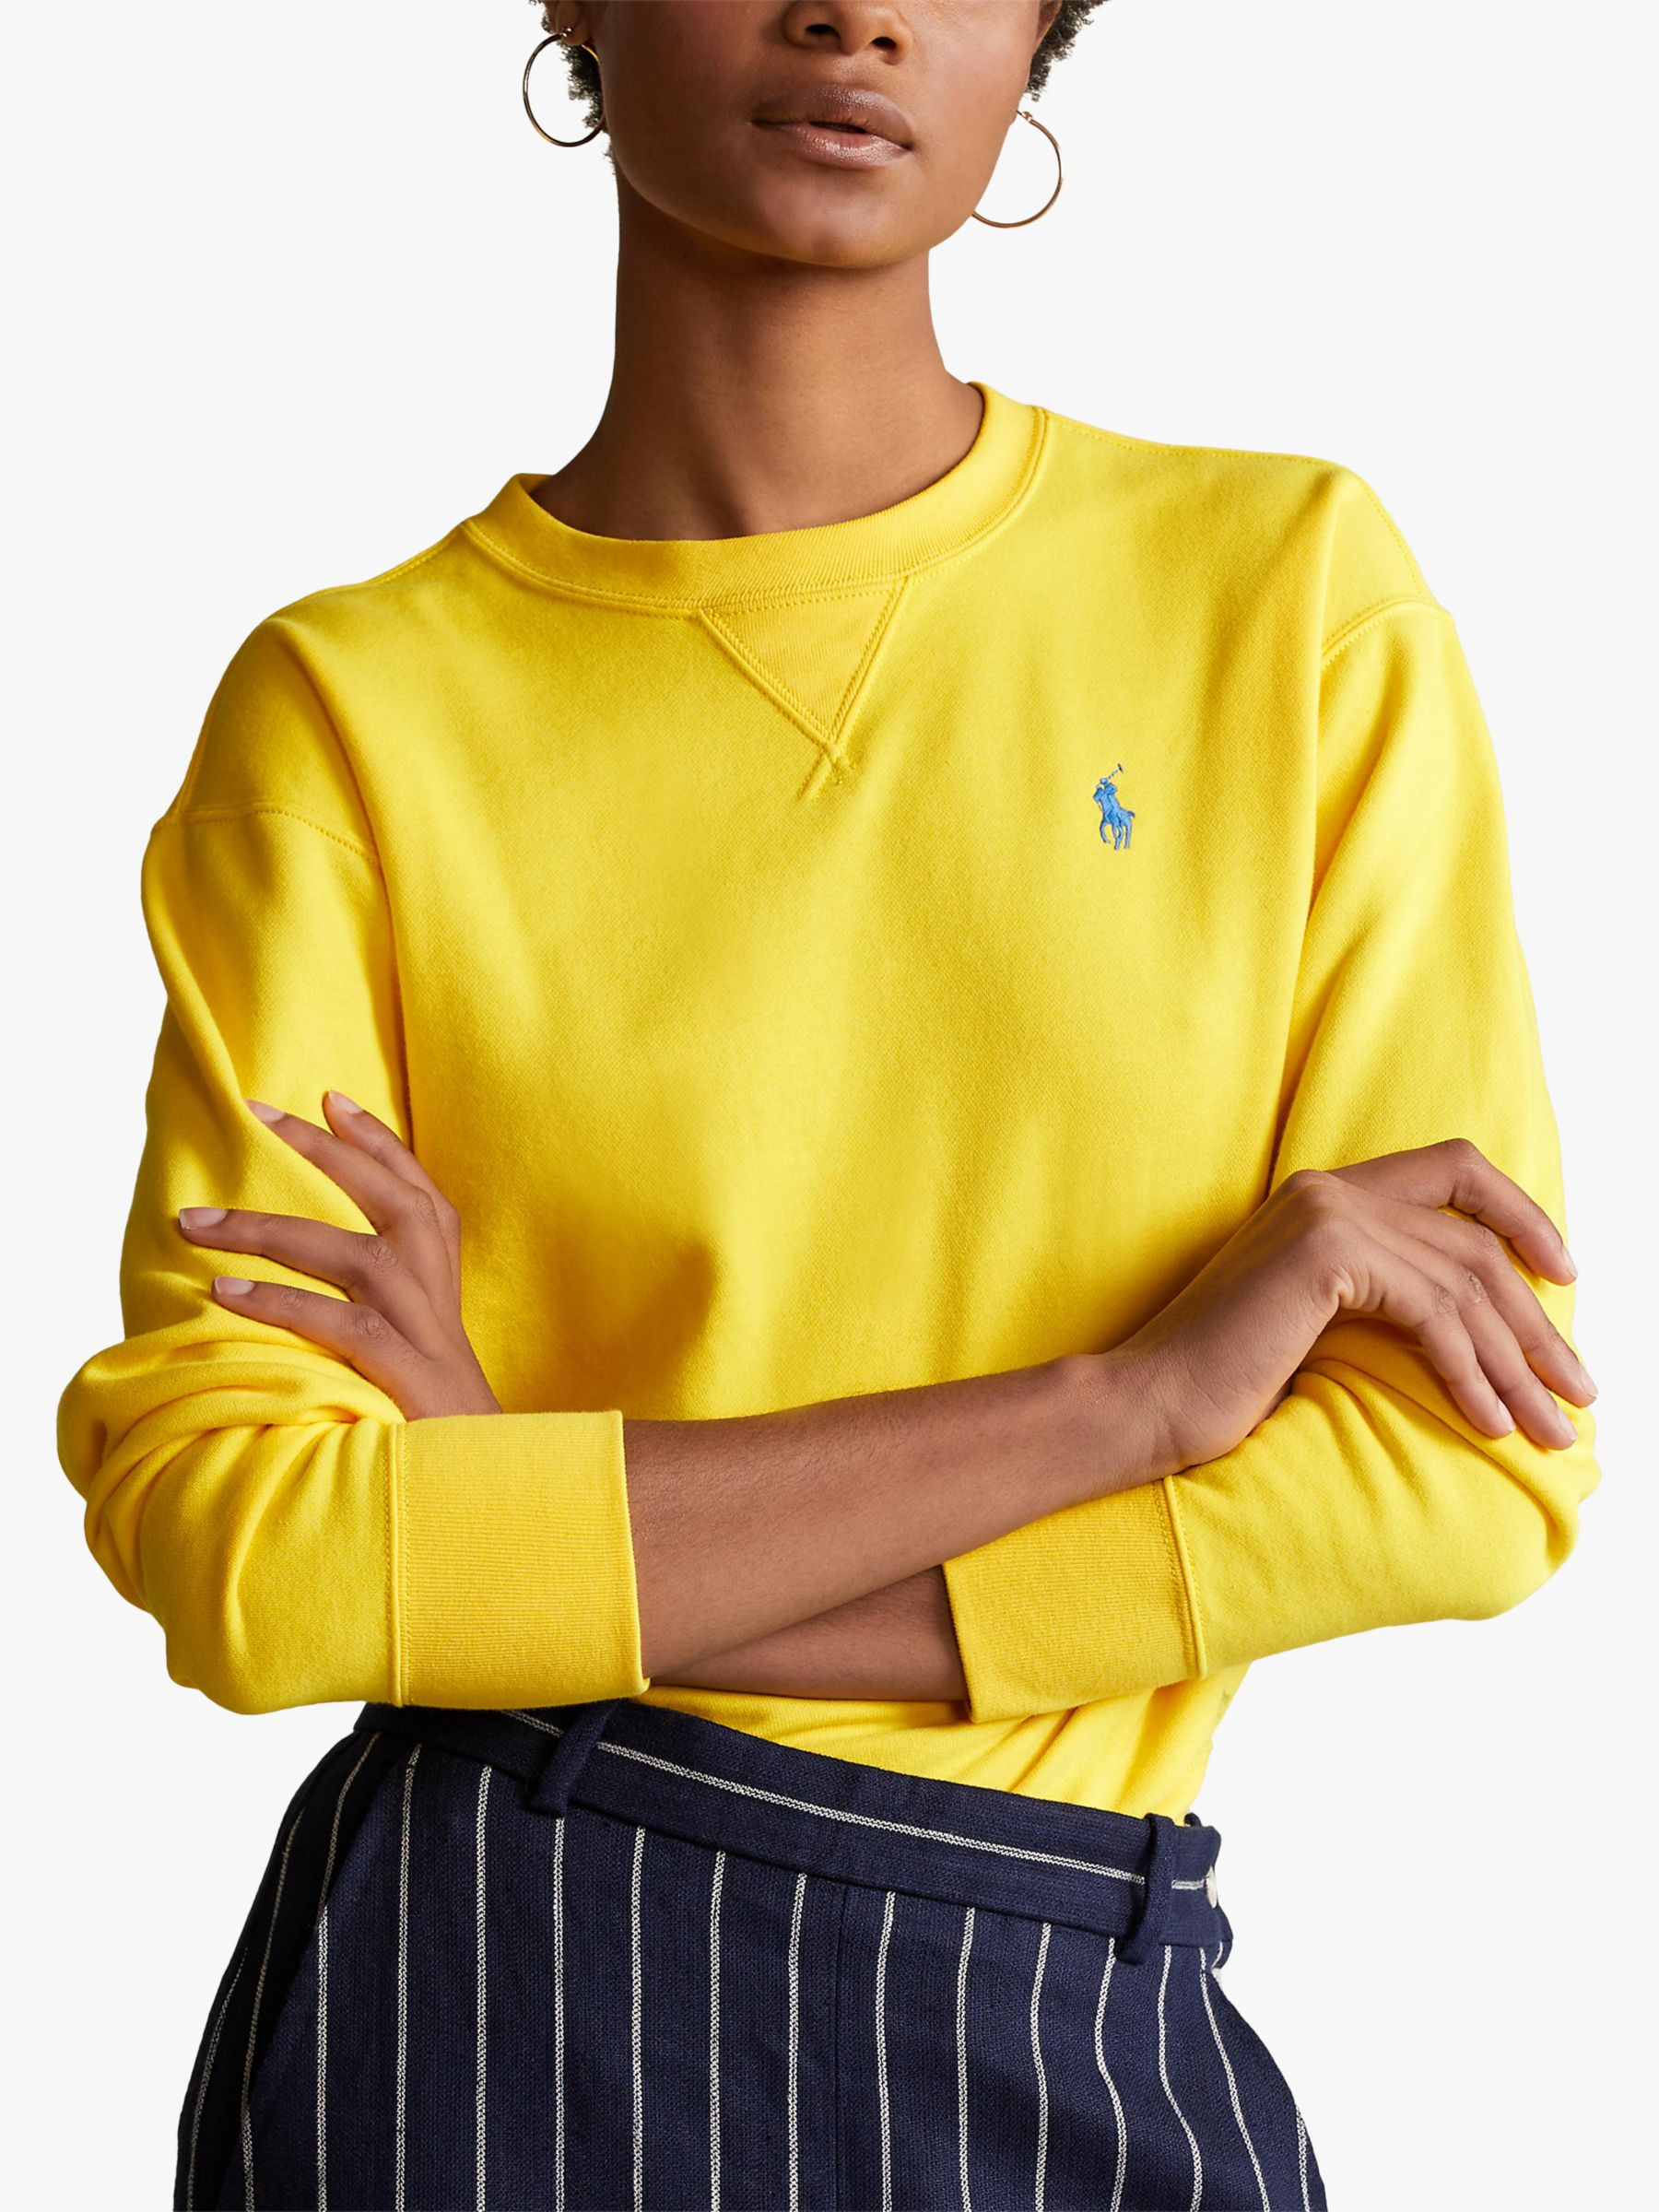 Polo Ralph Lauren Cotton Blend Sweatshirt, University Yellow